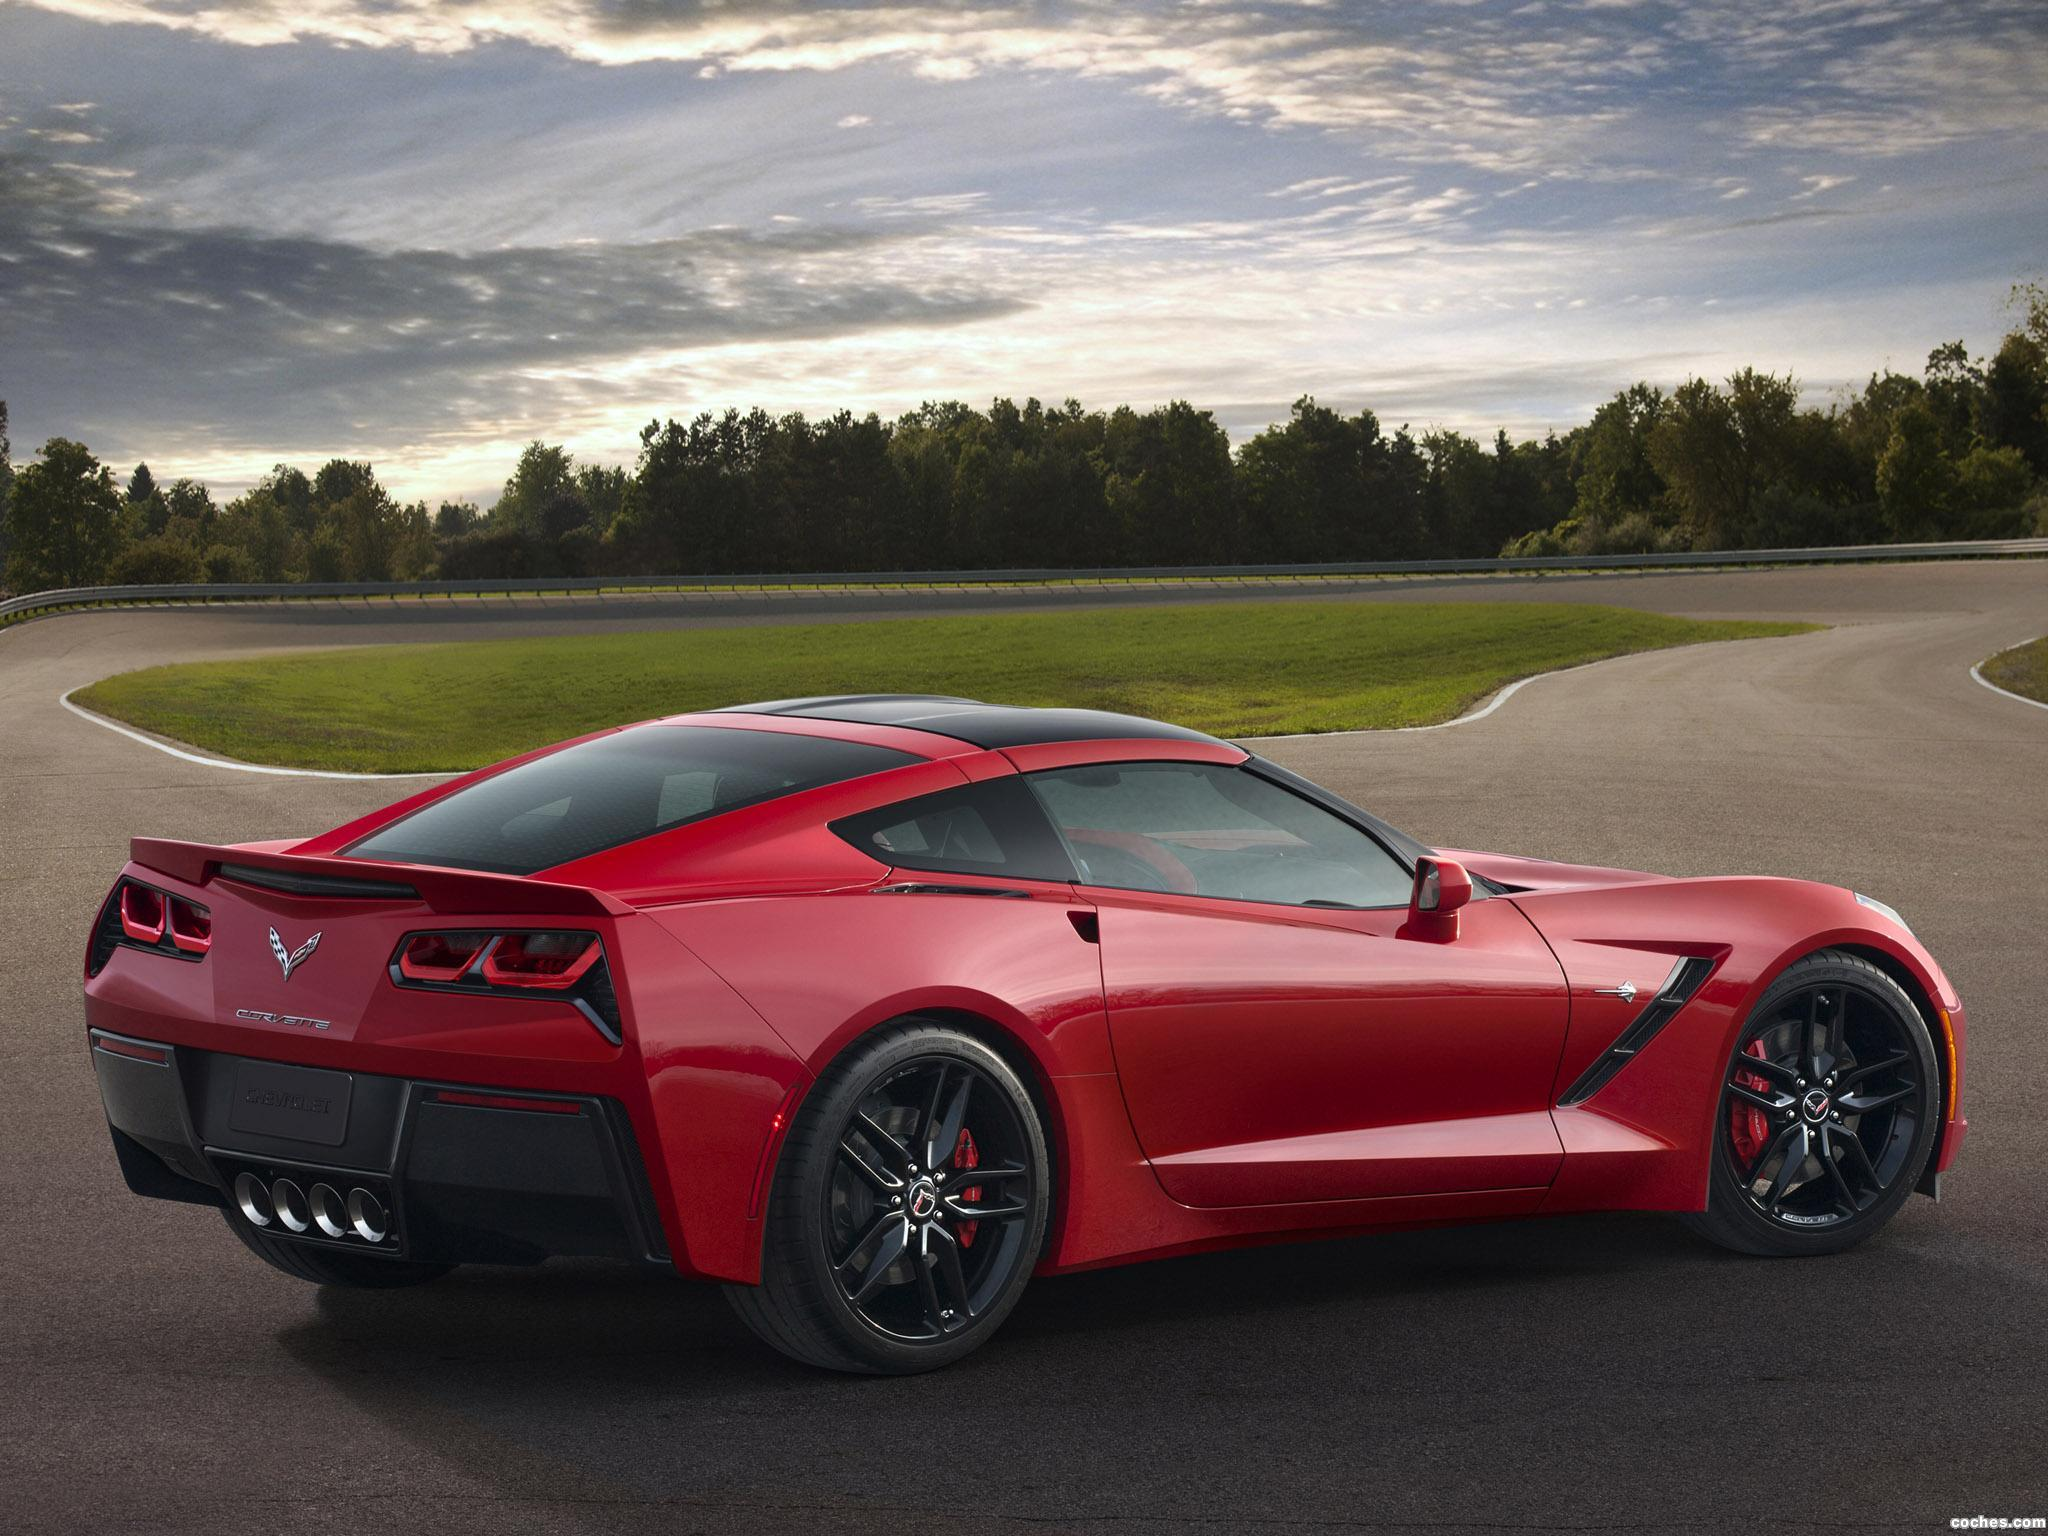 Foto 10 de Chevrolet Corvette Stingray C7 2014